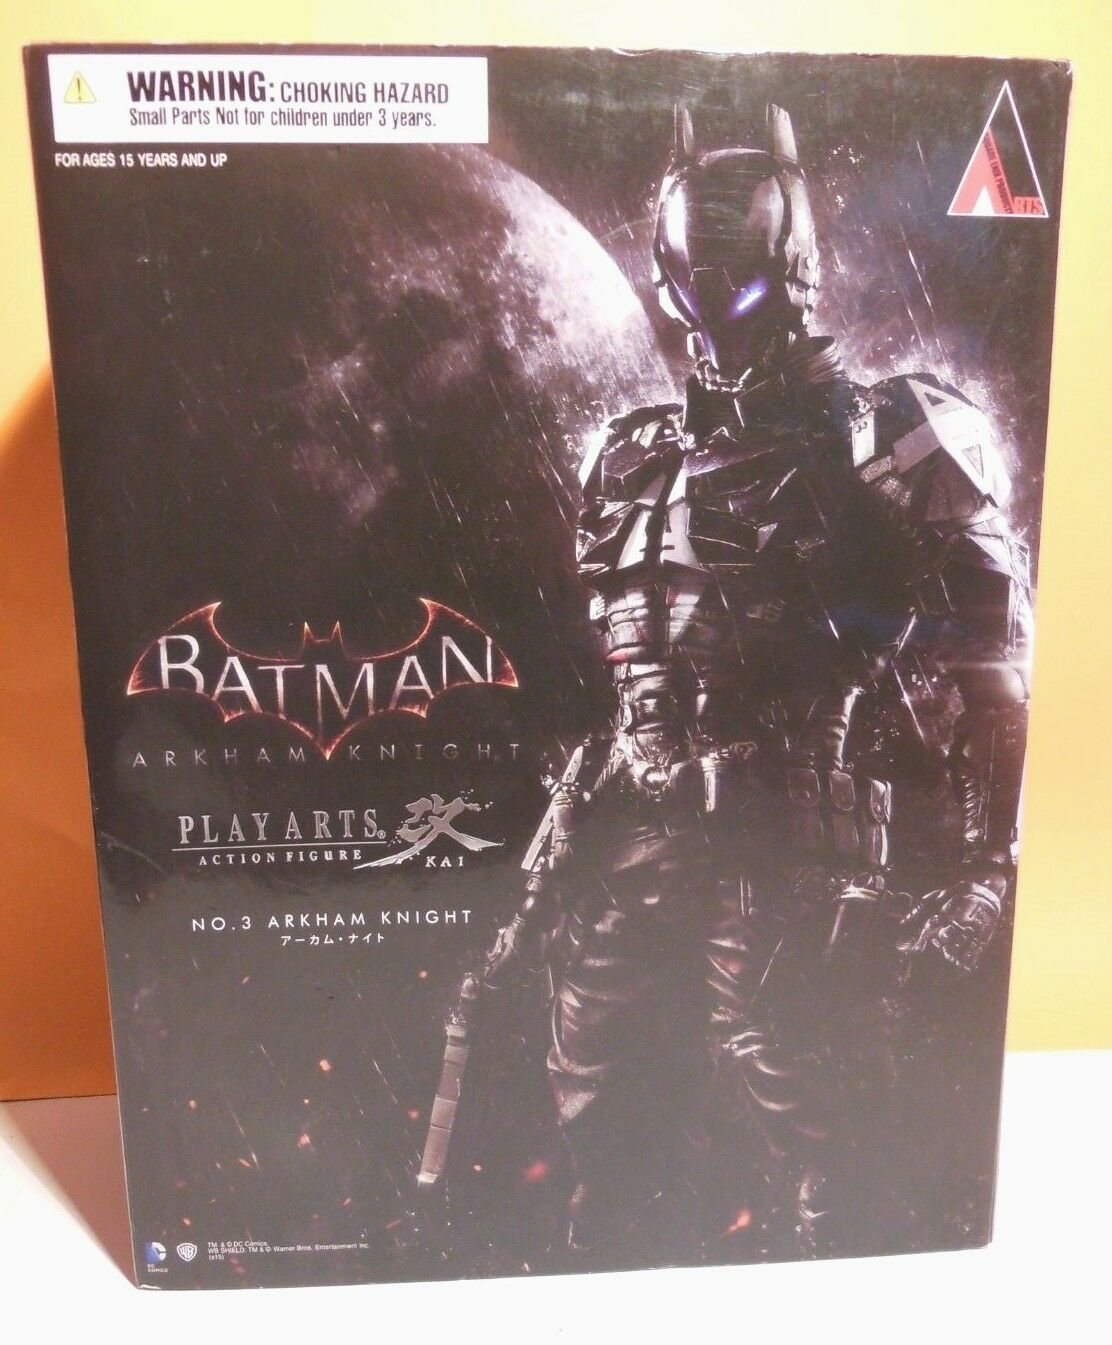 Batuomo Arkham Knight PLAY ARTS KAI No.03 azione cifra Square Enix Dc Comics